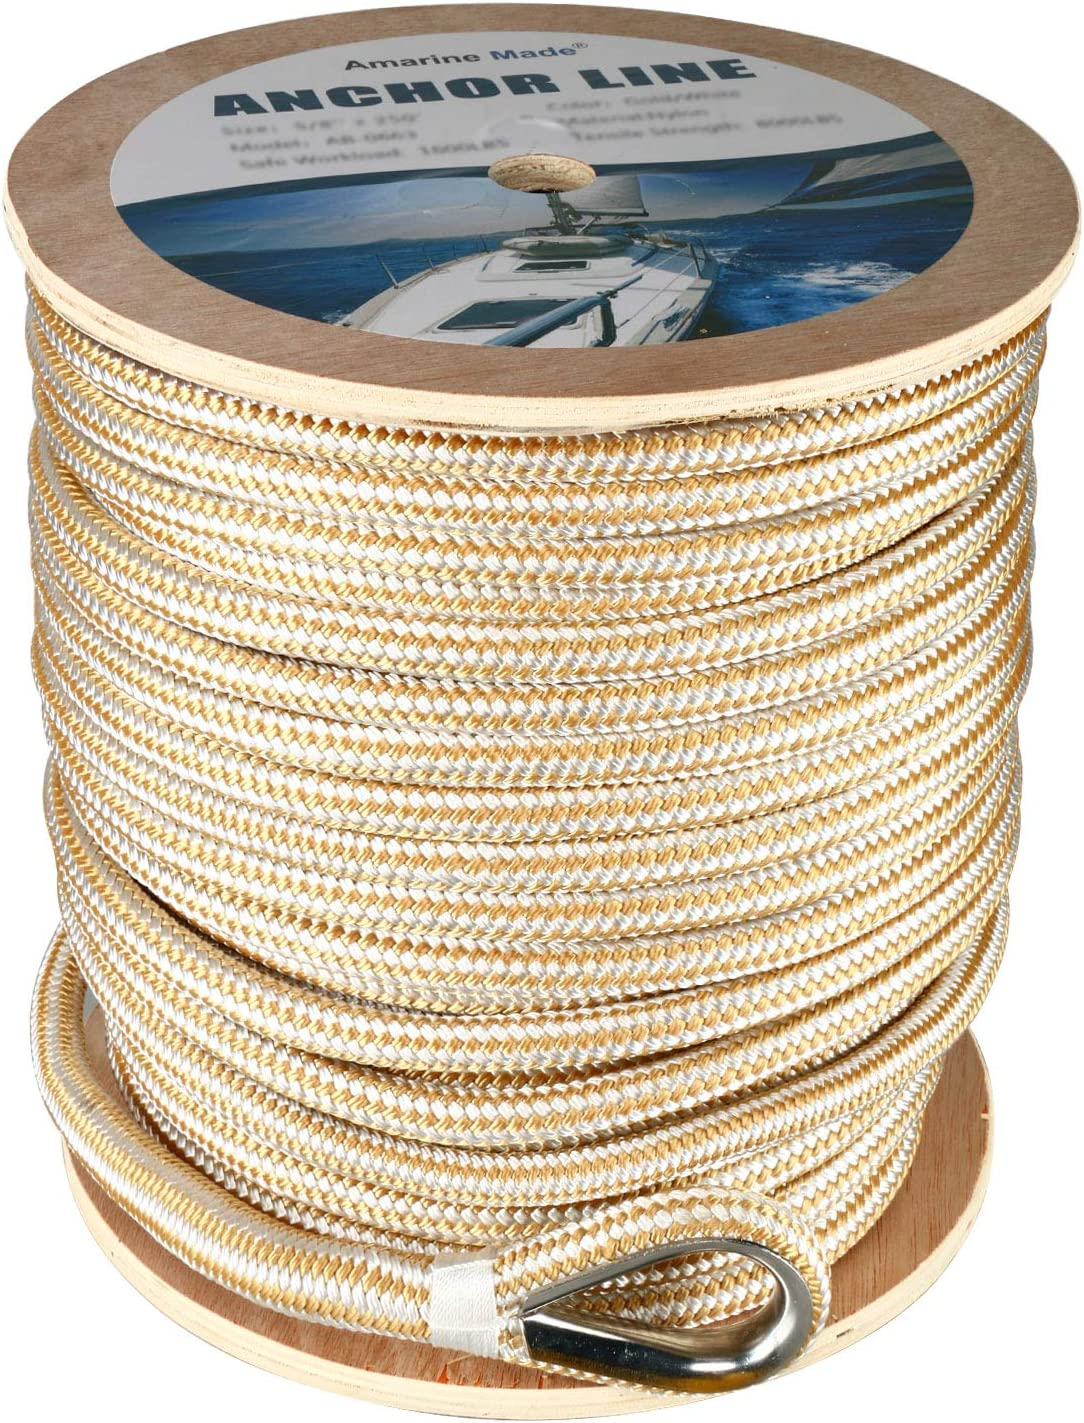 1//2″ X 100′ ANCHOR LINE BLACK DOUBLE BRAID NYLON ROPE W// STAINLESS STEEL THIMBLE